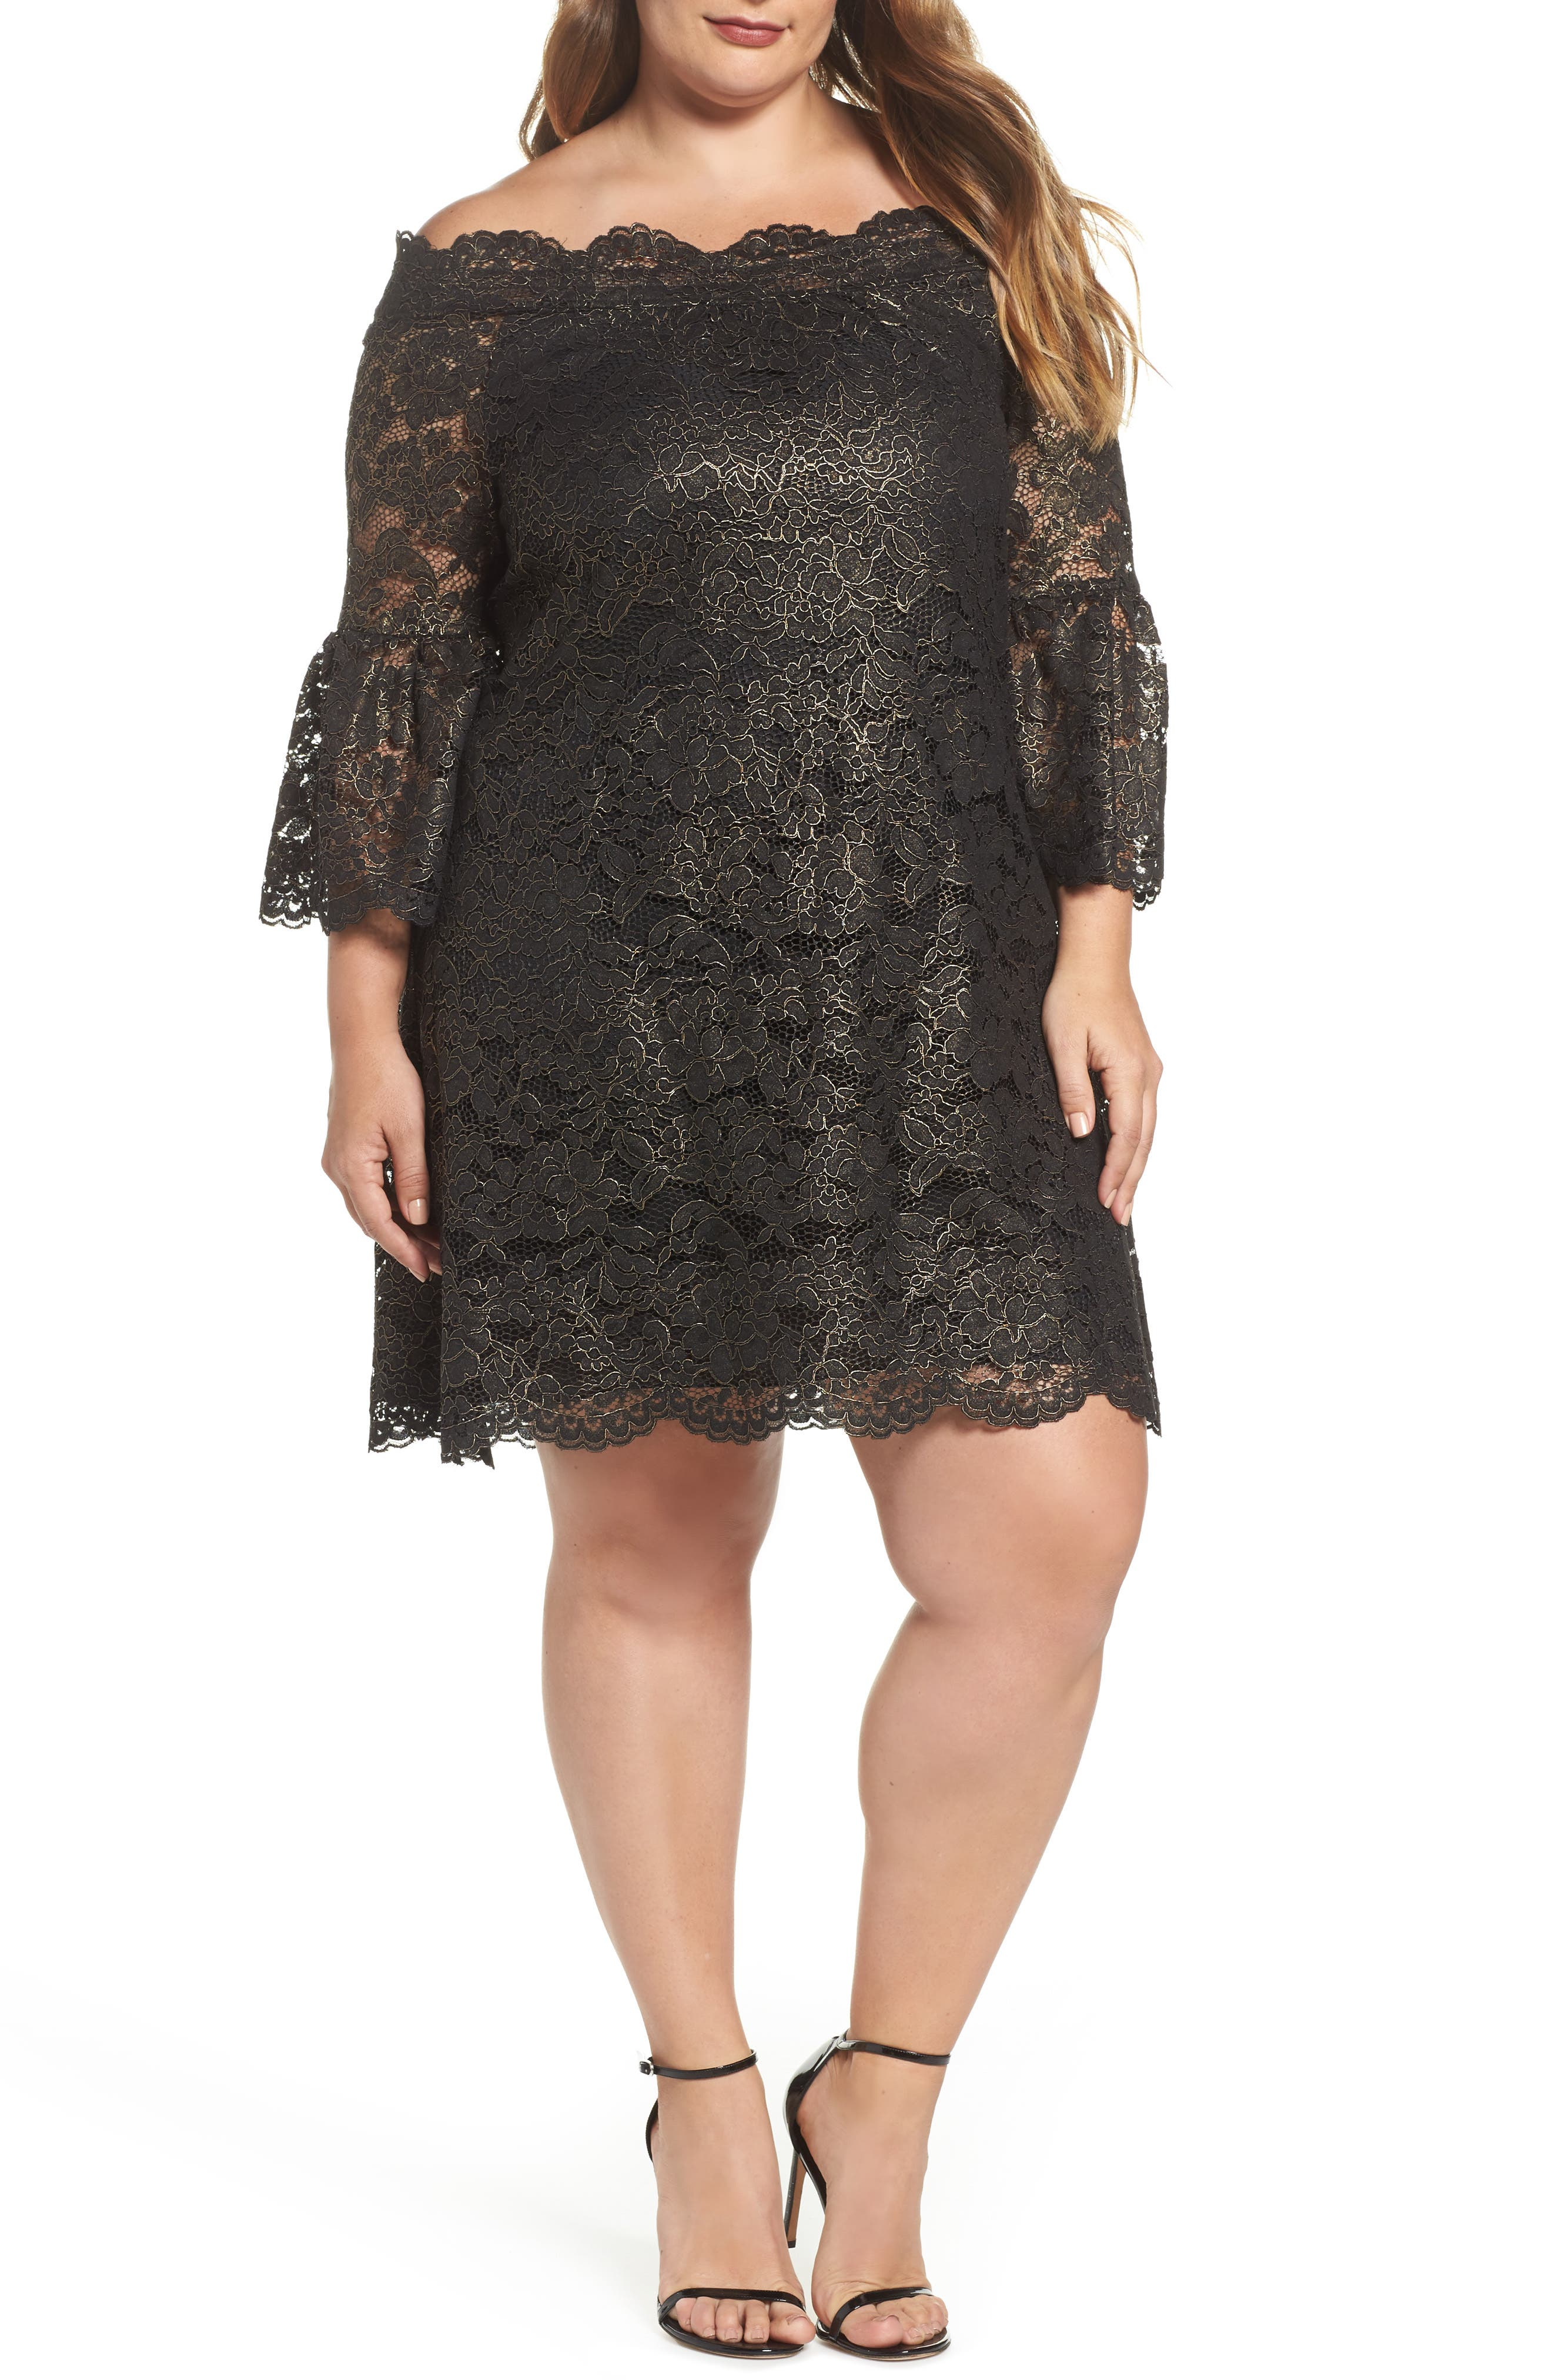 Main Image - ELVI Off the Shoulder Black Gold Lace Dress (Plus Size)